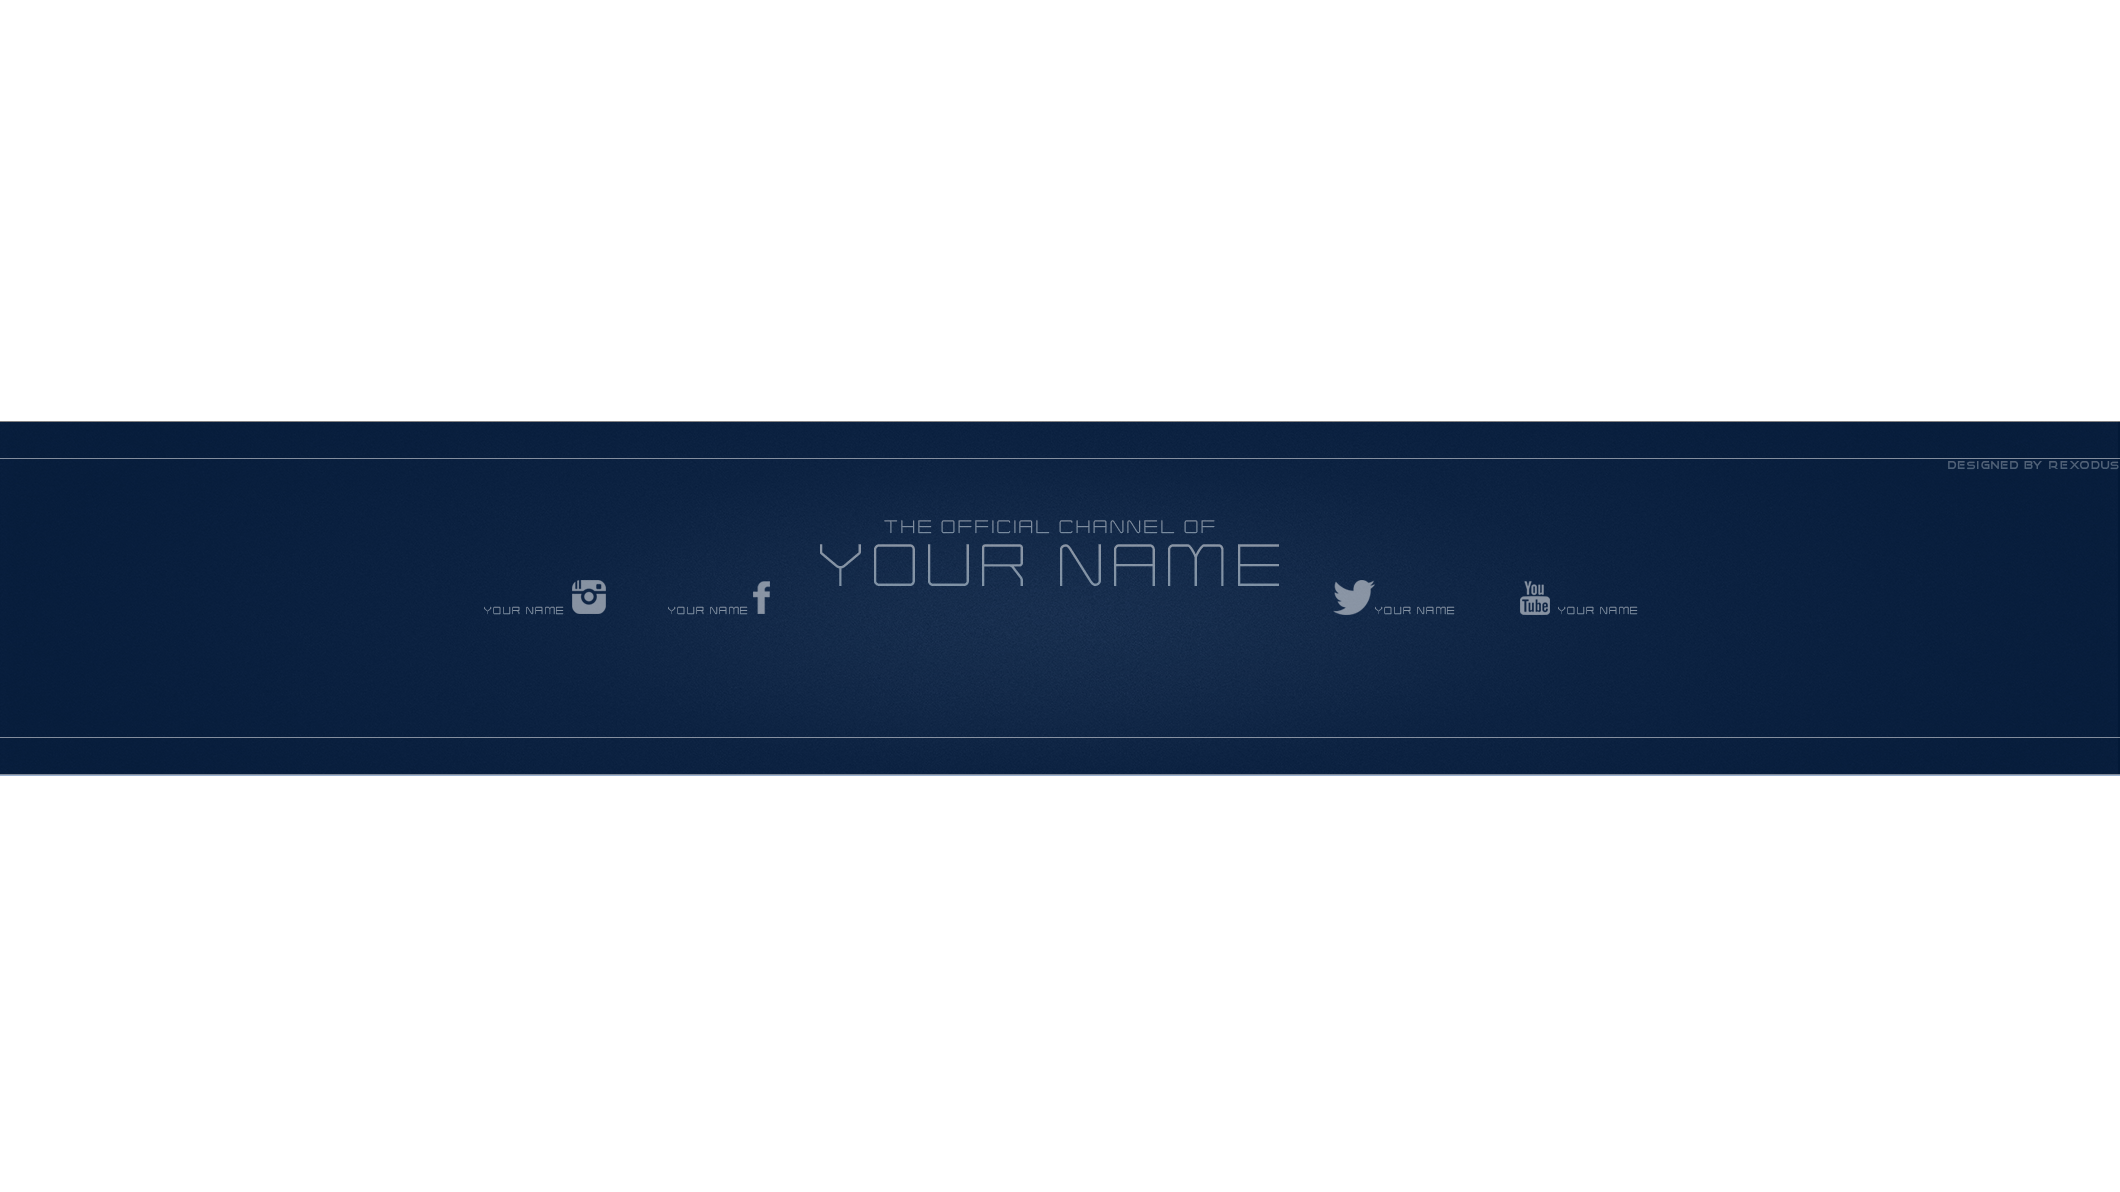 awesome banner template. Youtube clipart dimension